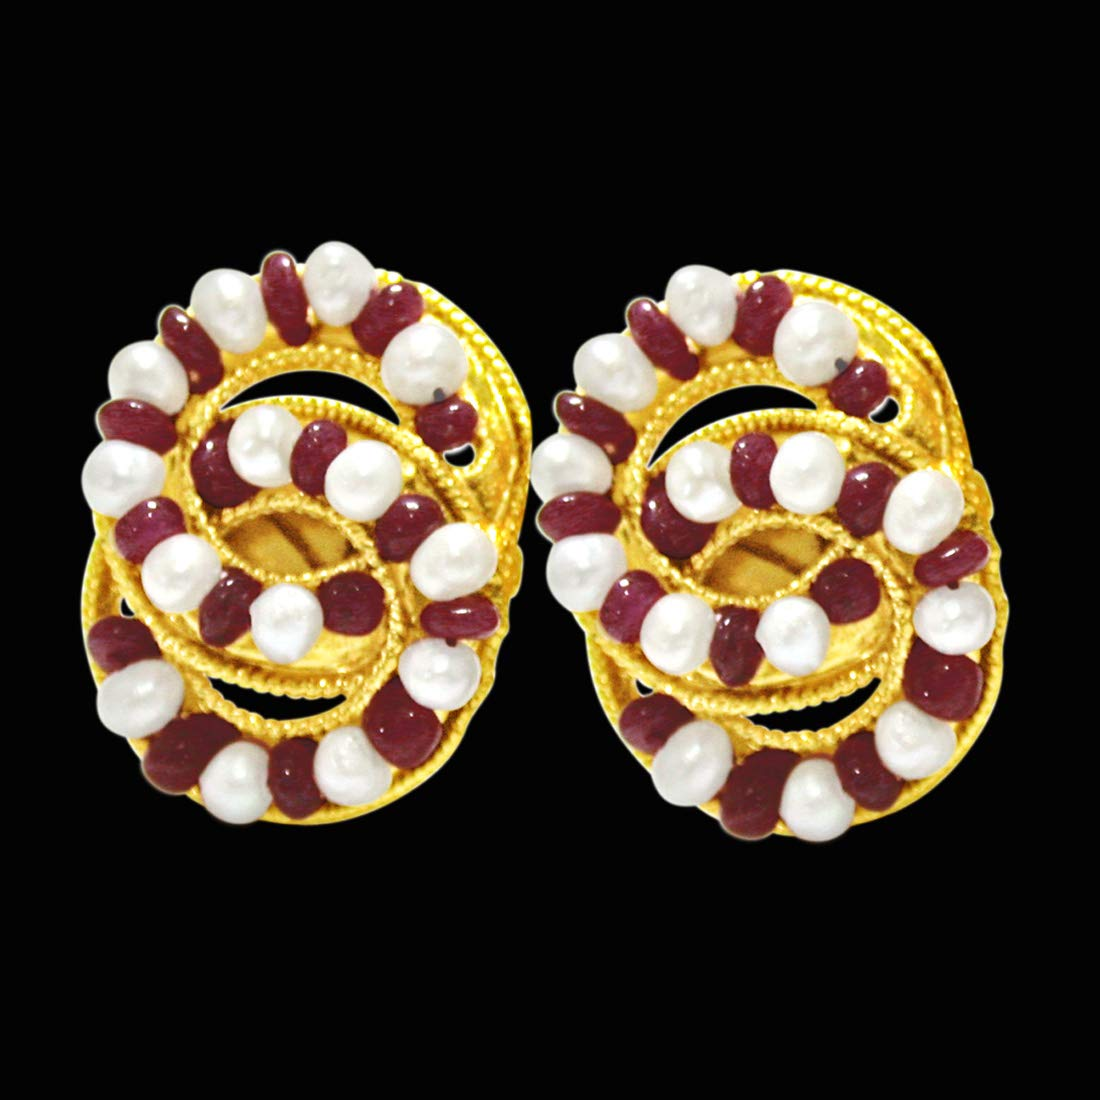 Stylish Sensation - Real Red Ruby Beads, Freshwater Pearls & Gold Plated Earrings for Women (SE77)